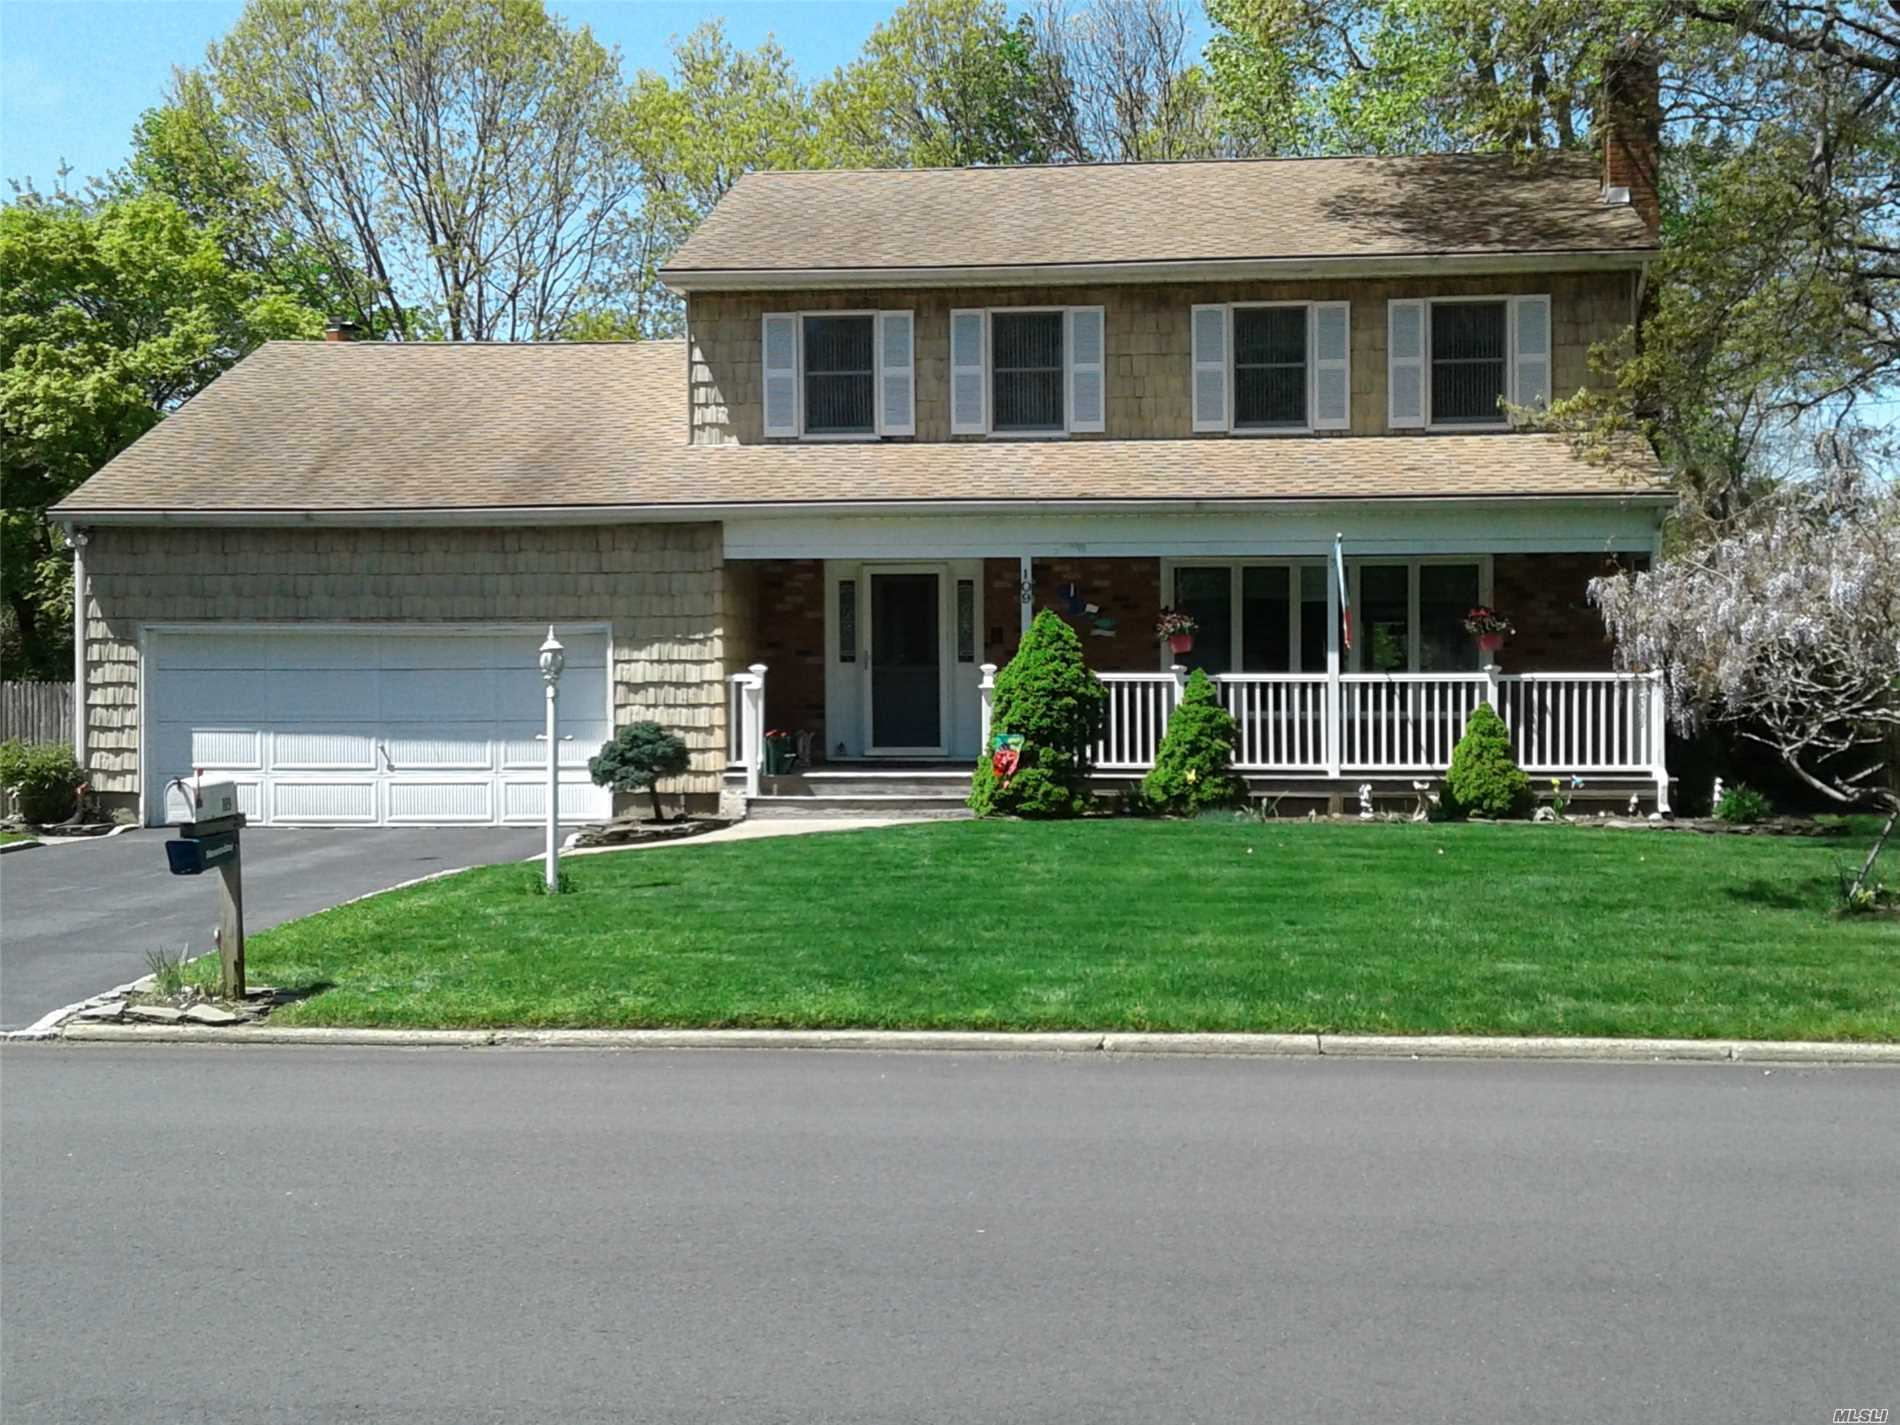 Absolutely Immaculate, True Center Hall Colonial with Charming Front Porch! Hardwood Floors, Large rooms, Great Closet Space. Wonderful Family Room with Stunning Wood-Burning Fireplace, Surrounded by Custom Stonework. EIK has Sliders to Large, Sunny Deck for Great Outdoor Entertainment. Fenced Corner Property. Full Finished Basement has Heat and Separate Office Space. Water Filter, 3 Zone Heat, Gutter Guards. Must See to Believe How Well-Maintained and Cared For this Home is!